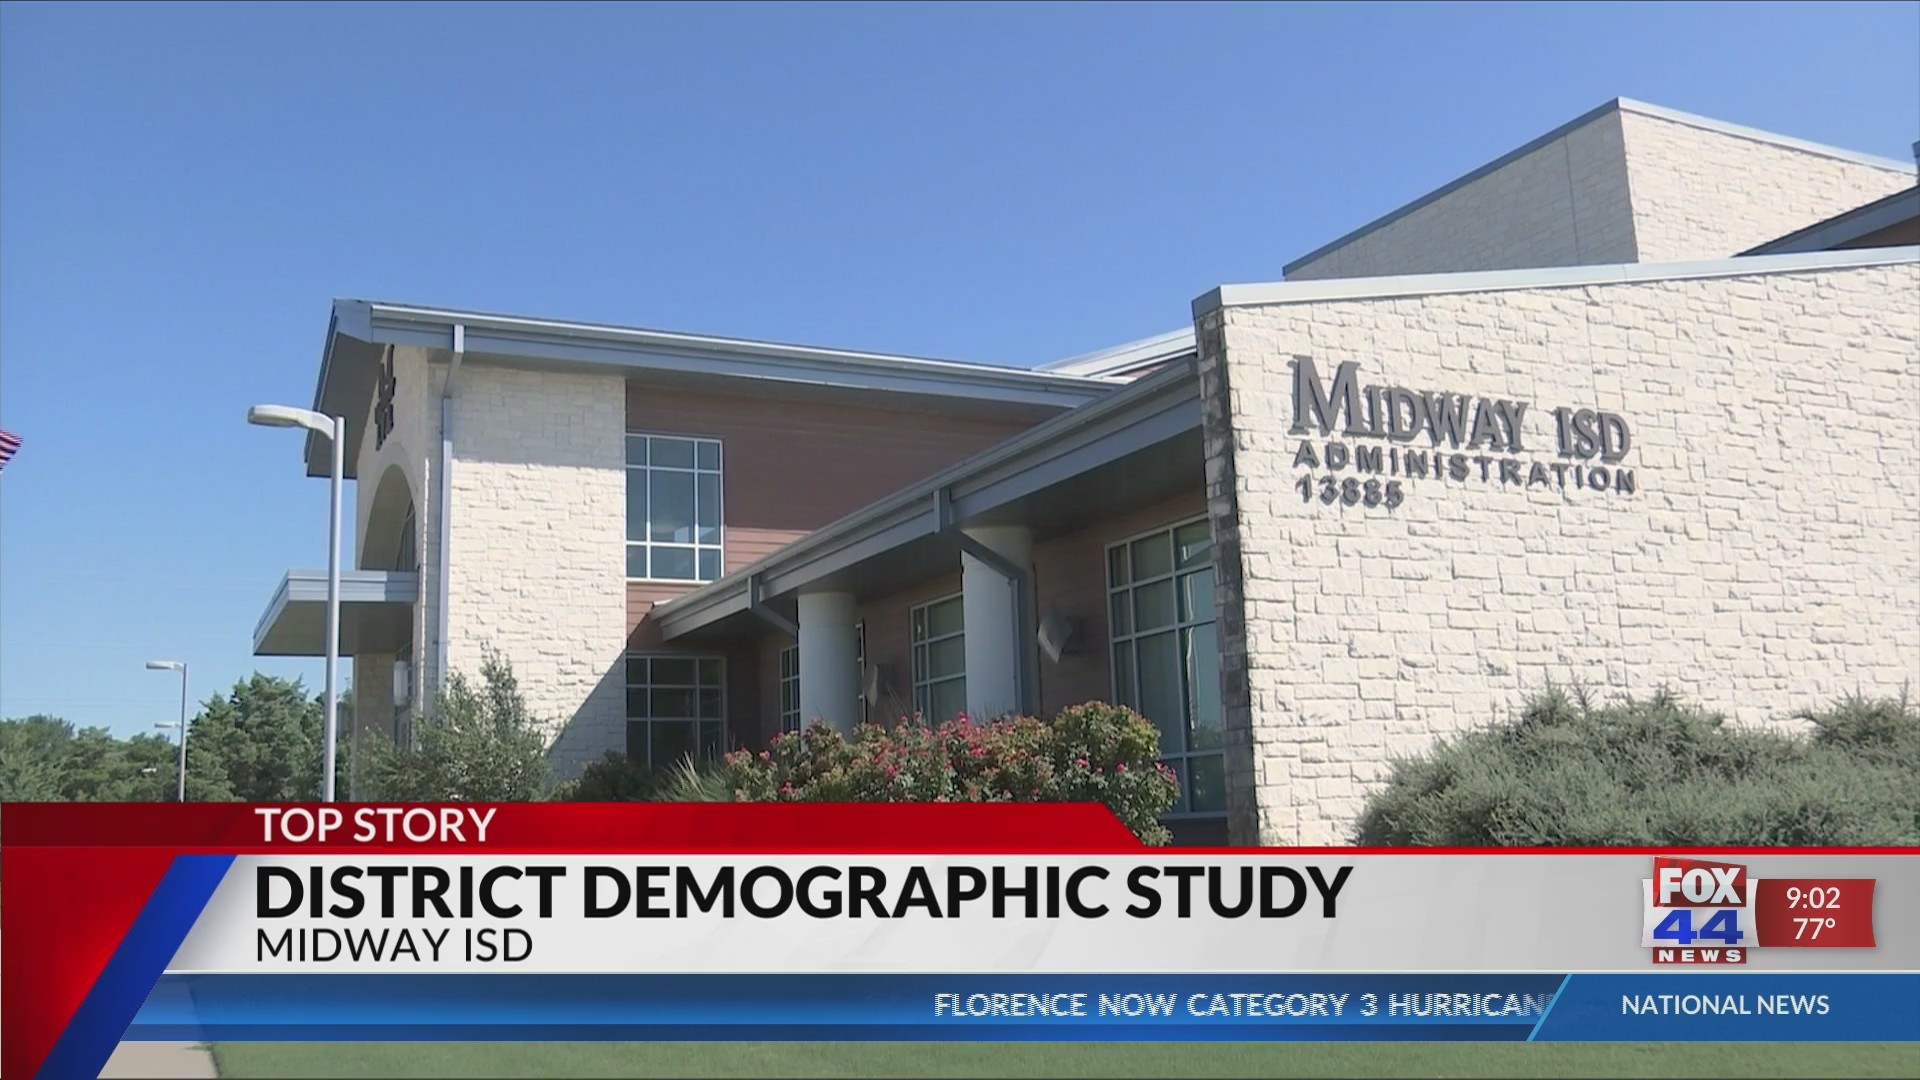 Midway ISD is growing fast